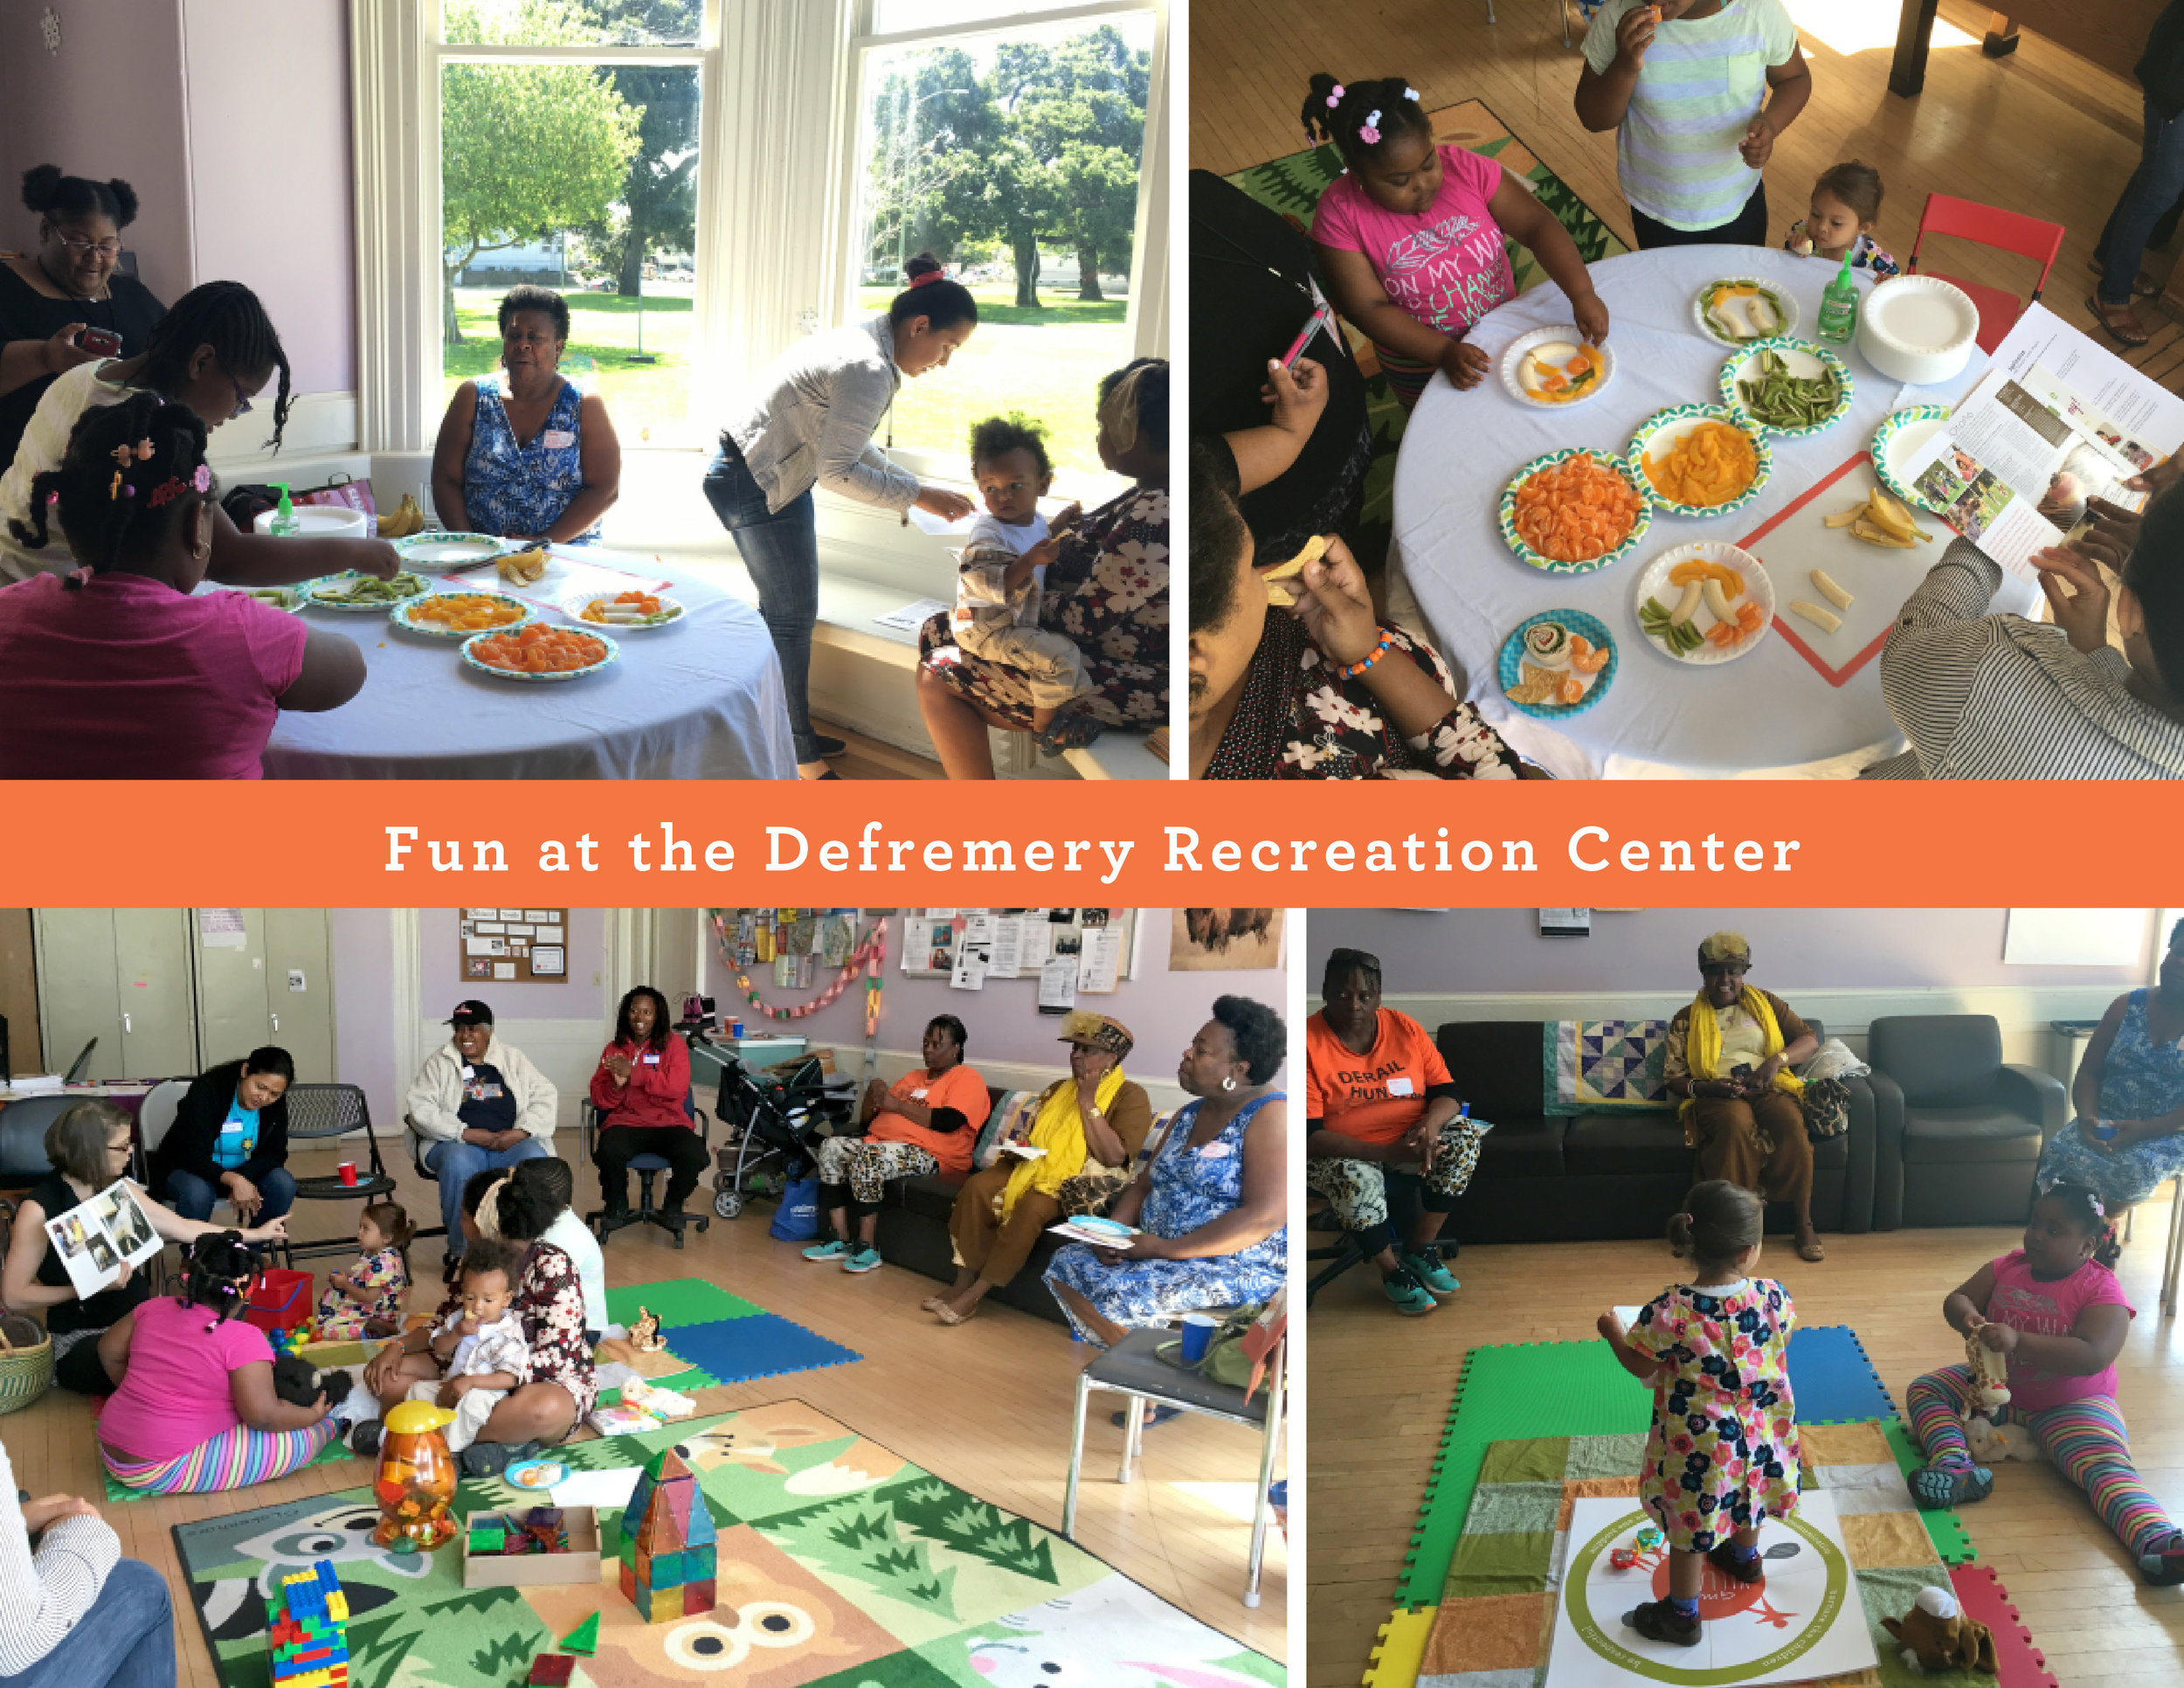 defremery recreation center.jpg